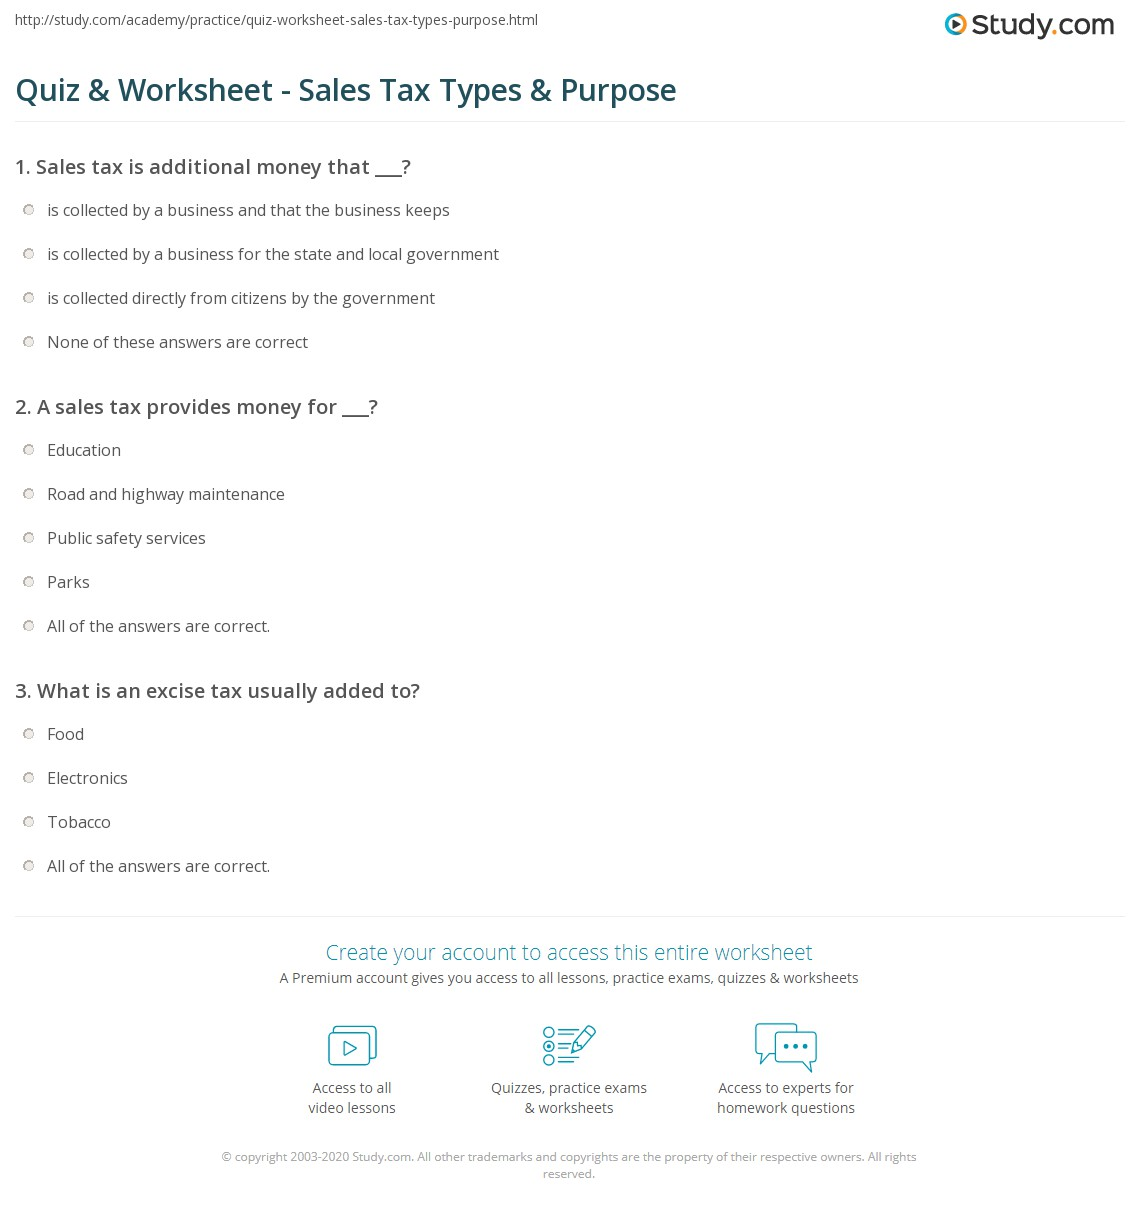 quiz worksheet sales tax types purpose. Black Bedroom Furniture Sets. Home Design Ideas